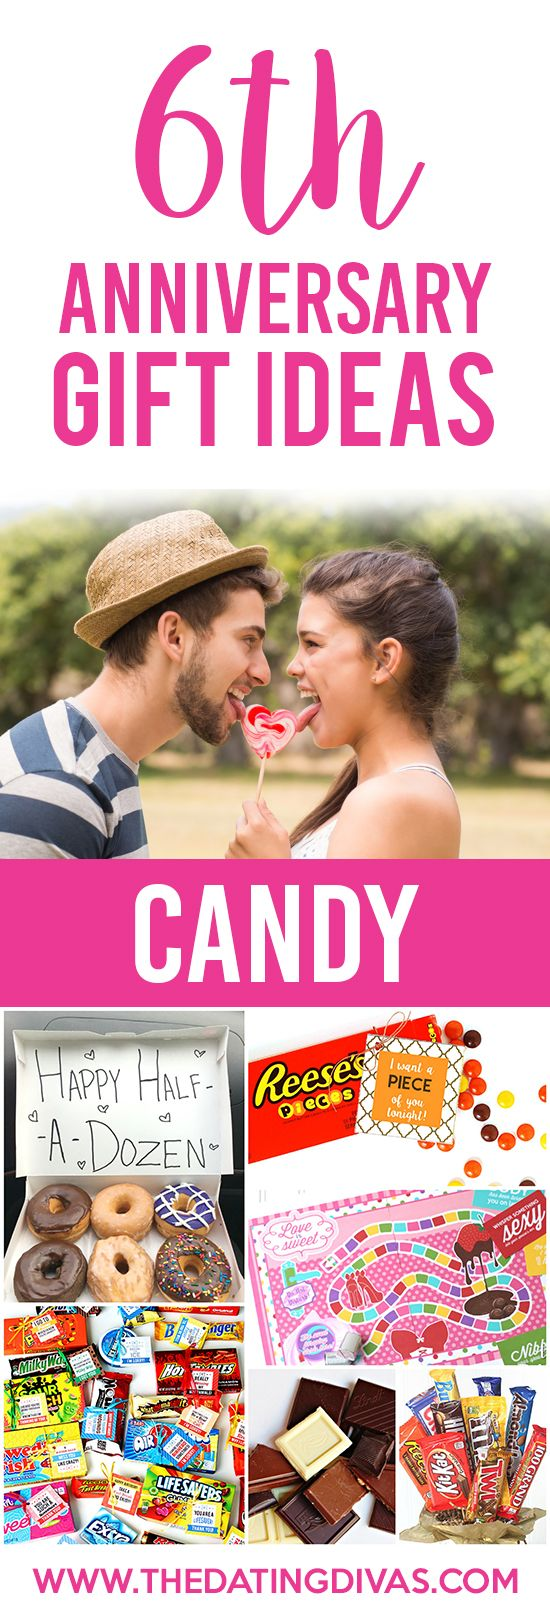 1 year dating gift ideas for him